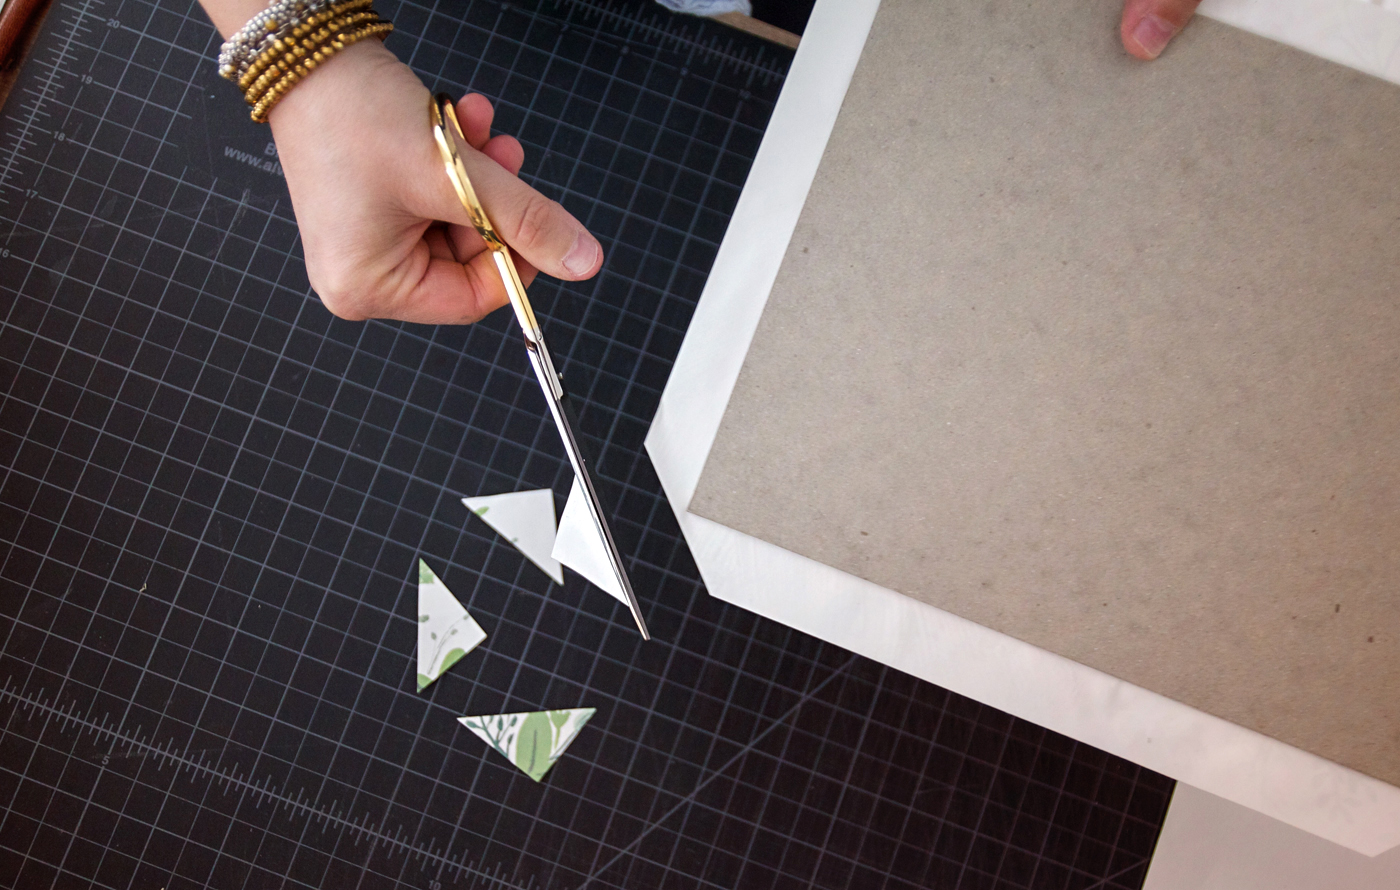 Step 3: Cut the corners of your paper, leaving about a millimeter between the edge and the cardboard.